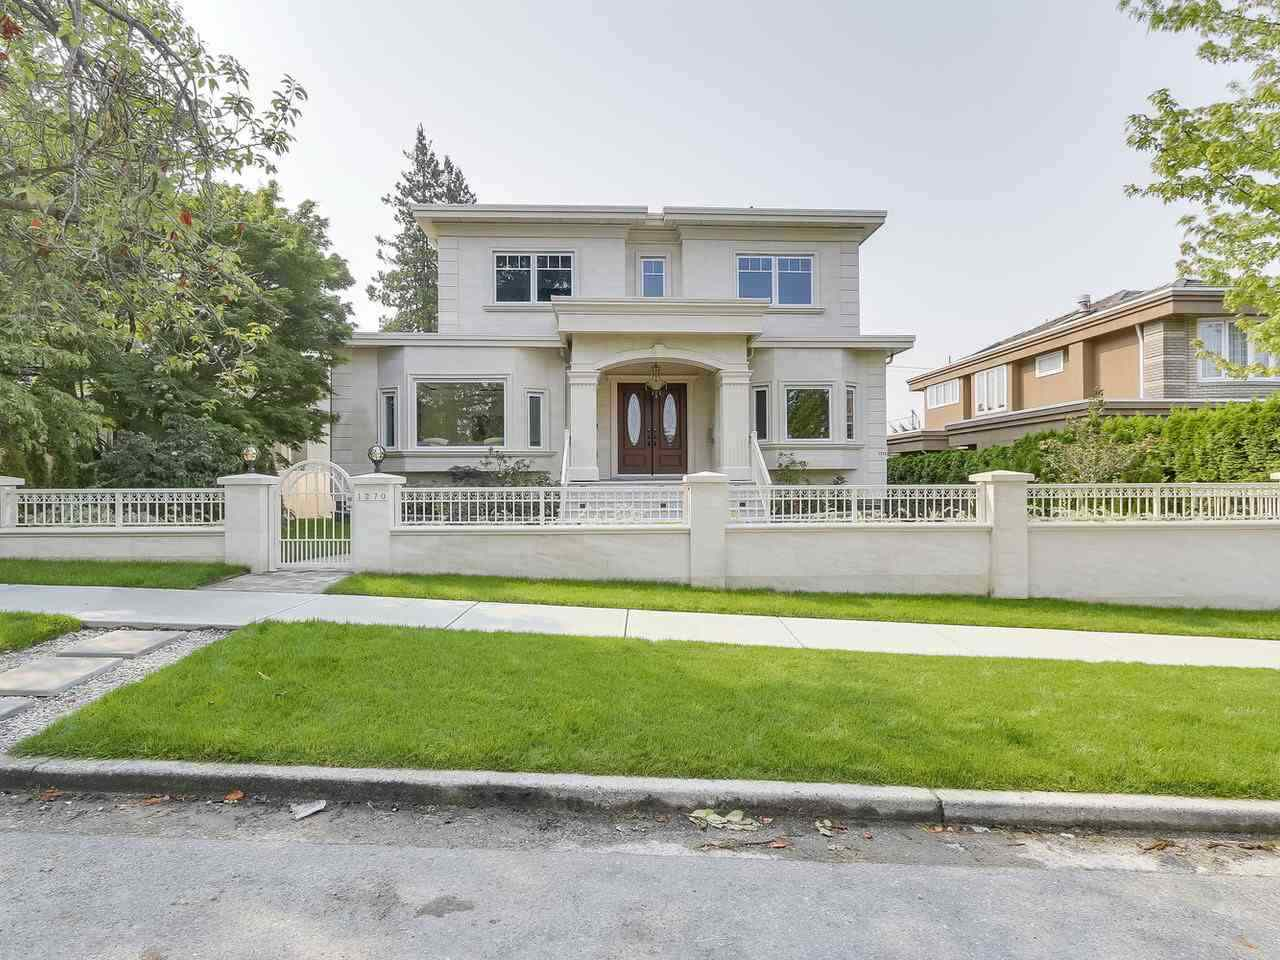 1270 W 45TH AVENUE - South Granville House/Single Family for sale, 6 Bedrooms (R2531790)